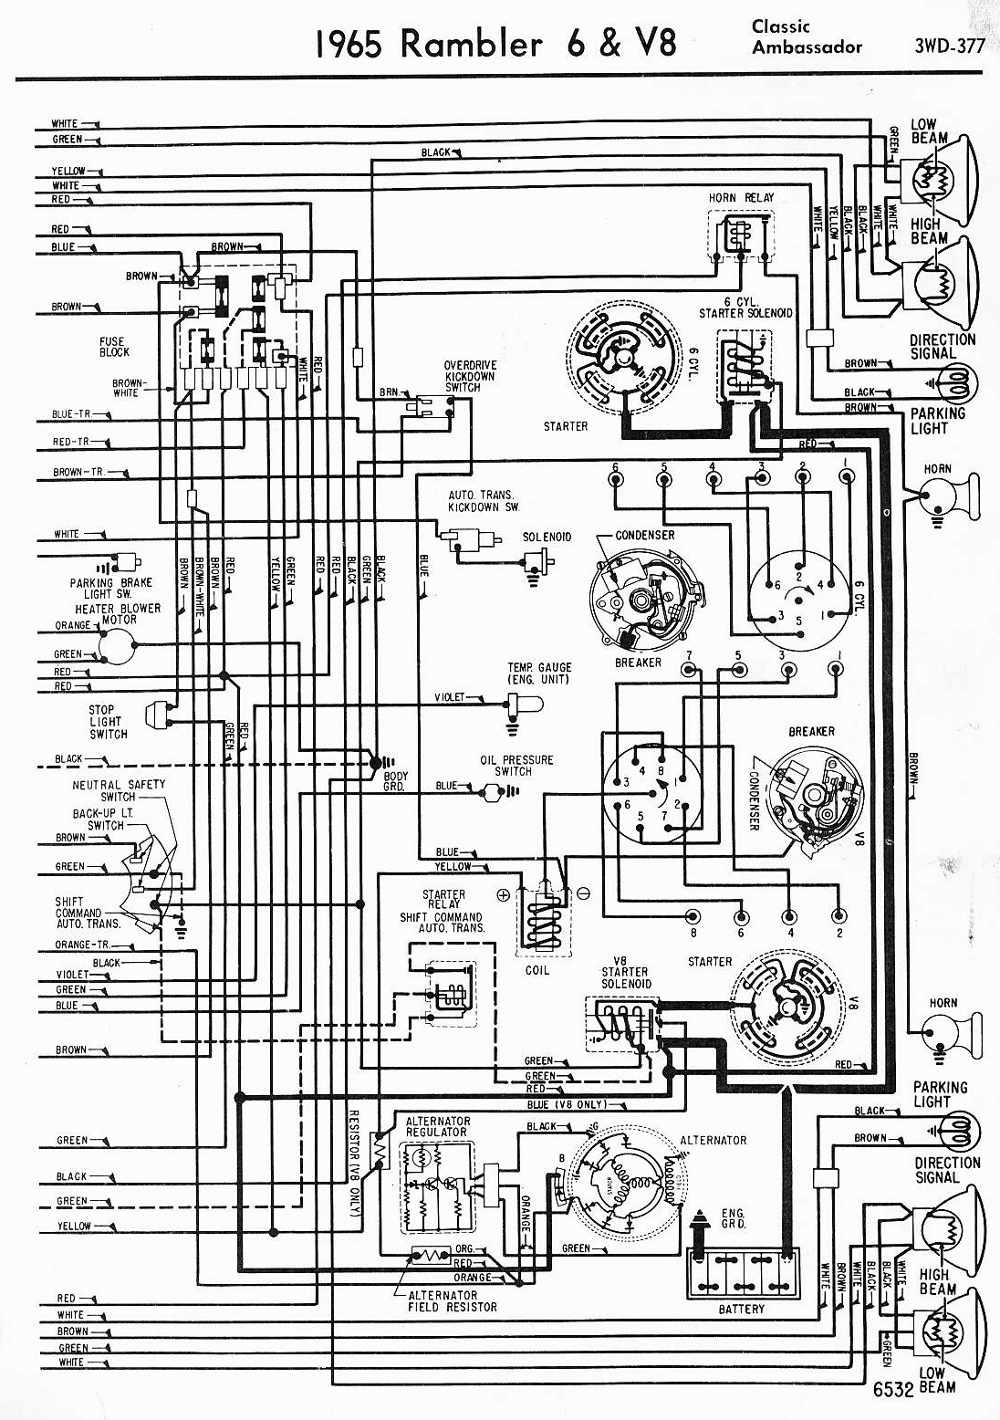 amc car manuals wiring diagrams pdf fault codes rh automotive manuals net 1967 Ford Mustang Wiring Diagram 1967 VW Wiring Diagram